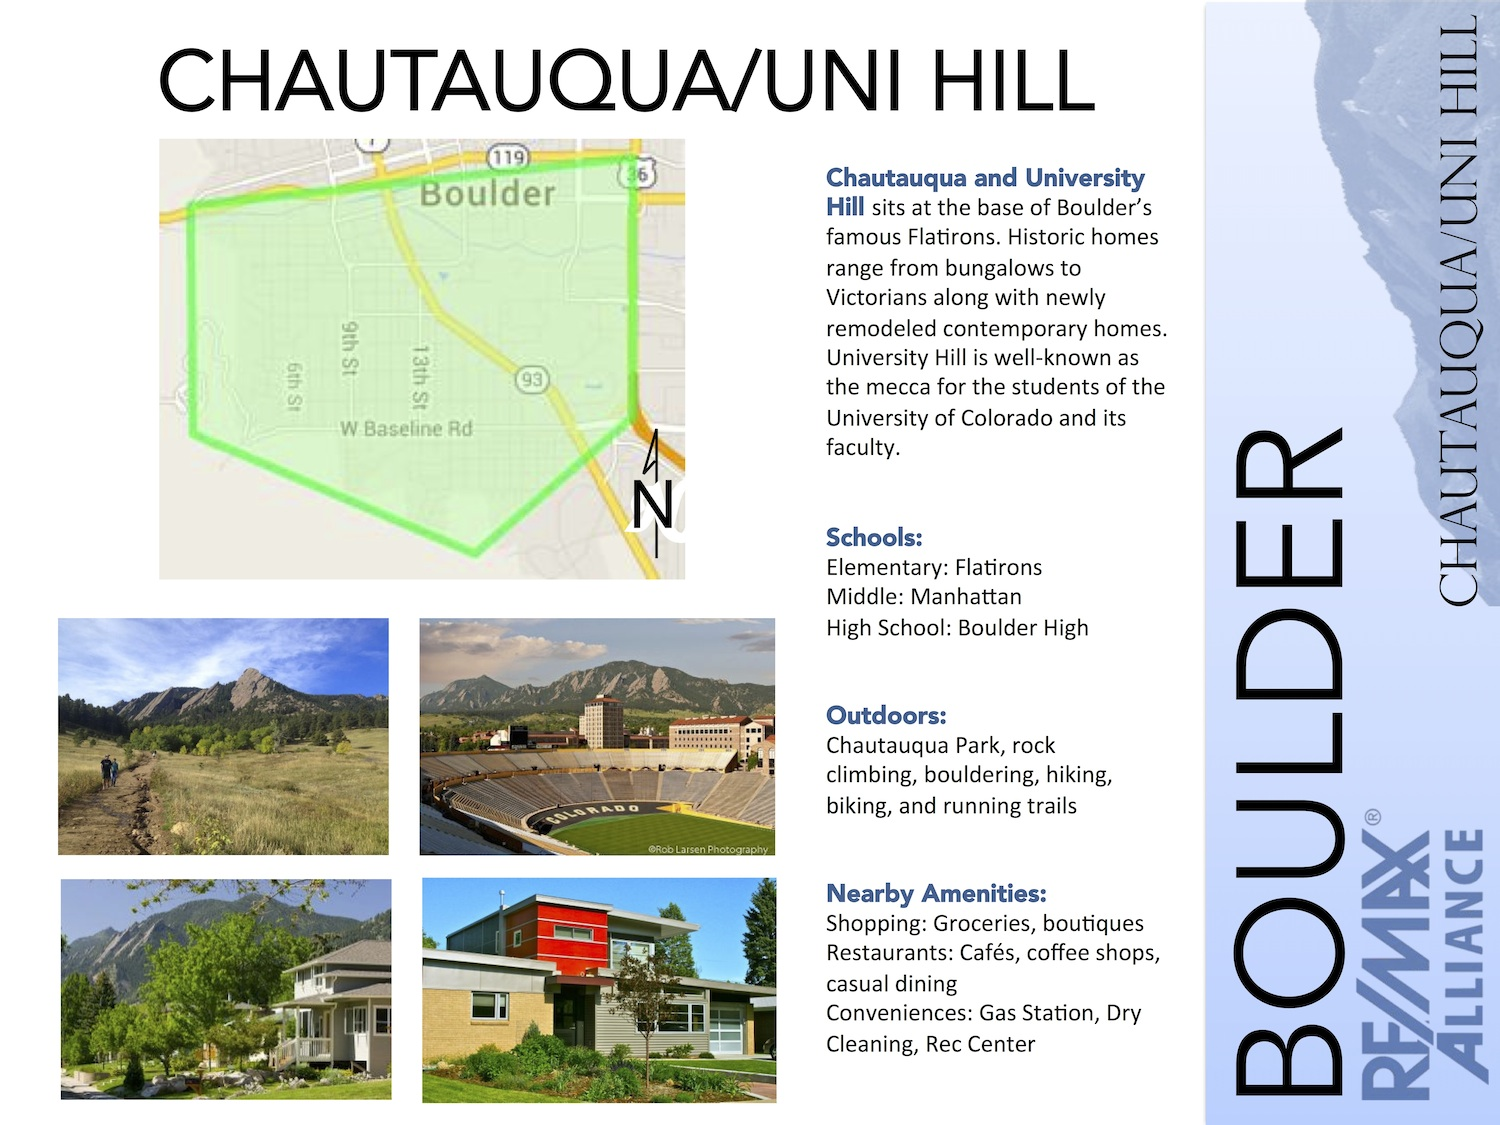 Chautauqua/University Hill, Colorado